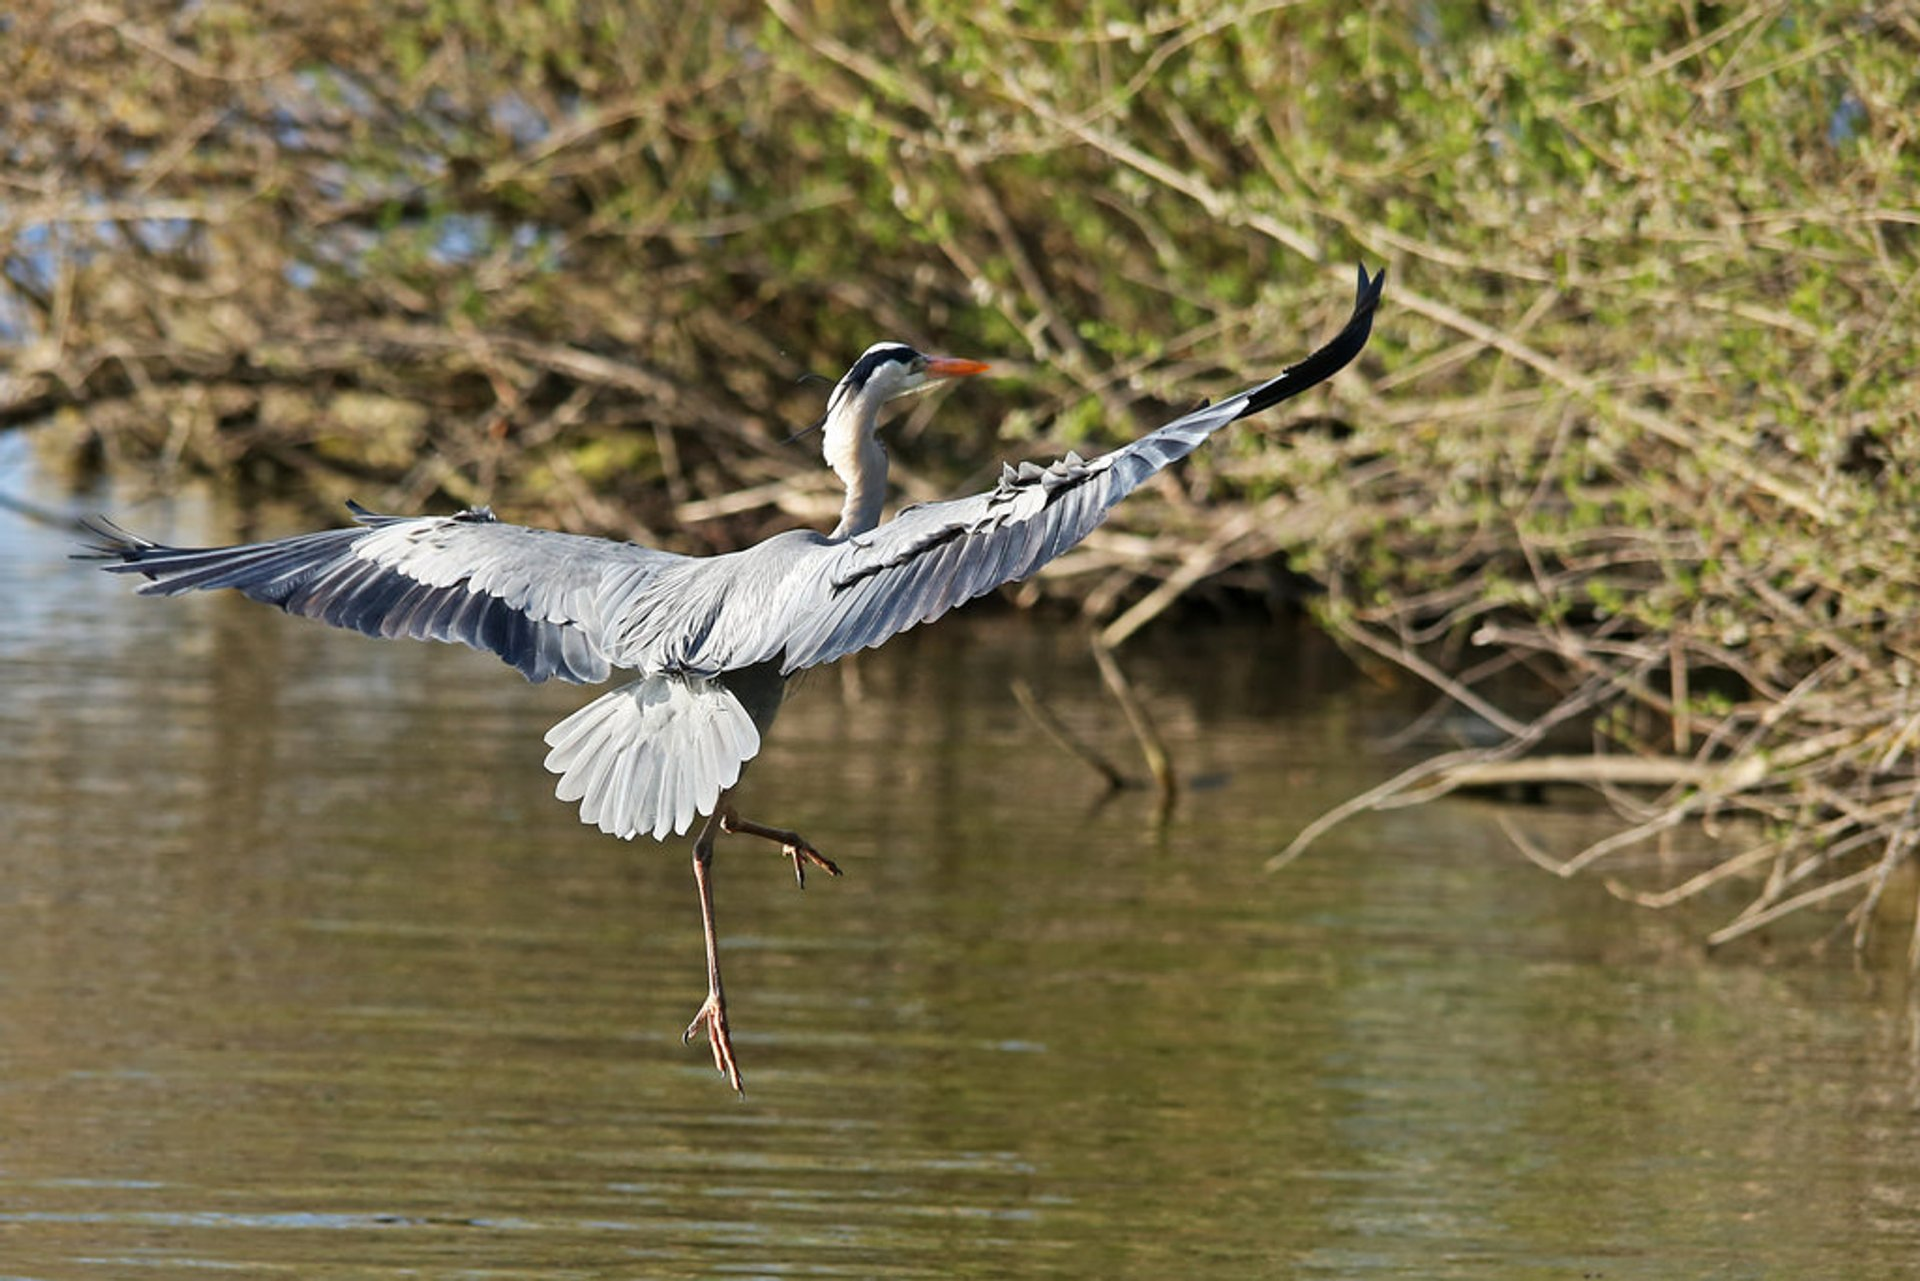 Grey heron approaching land, Greifensee District, Switzerland 2020